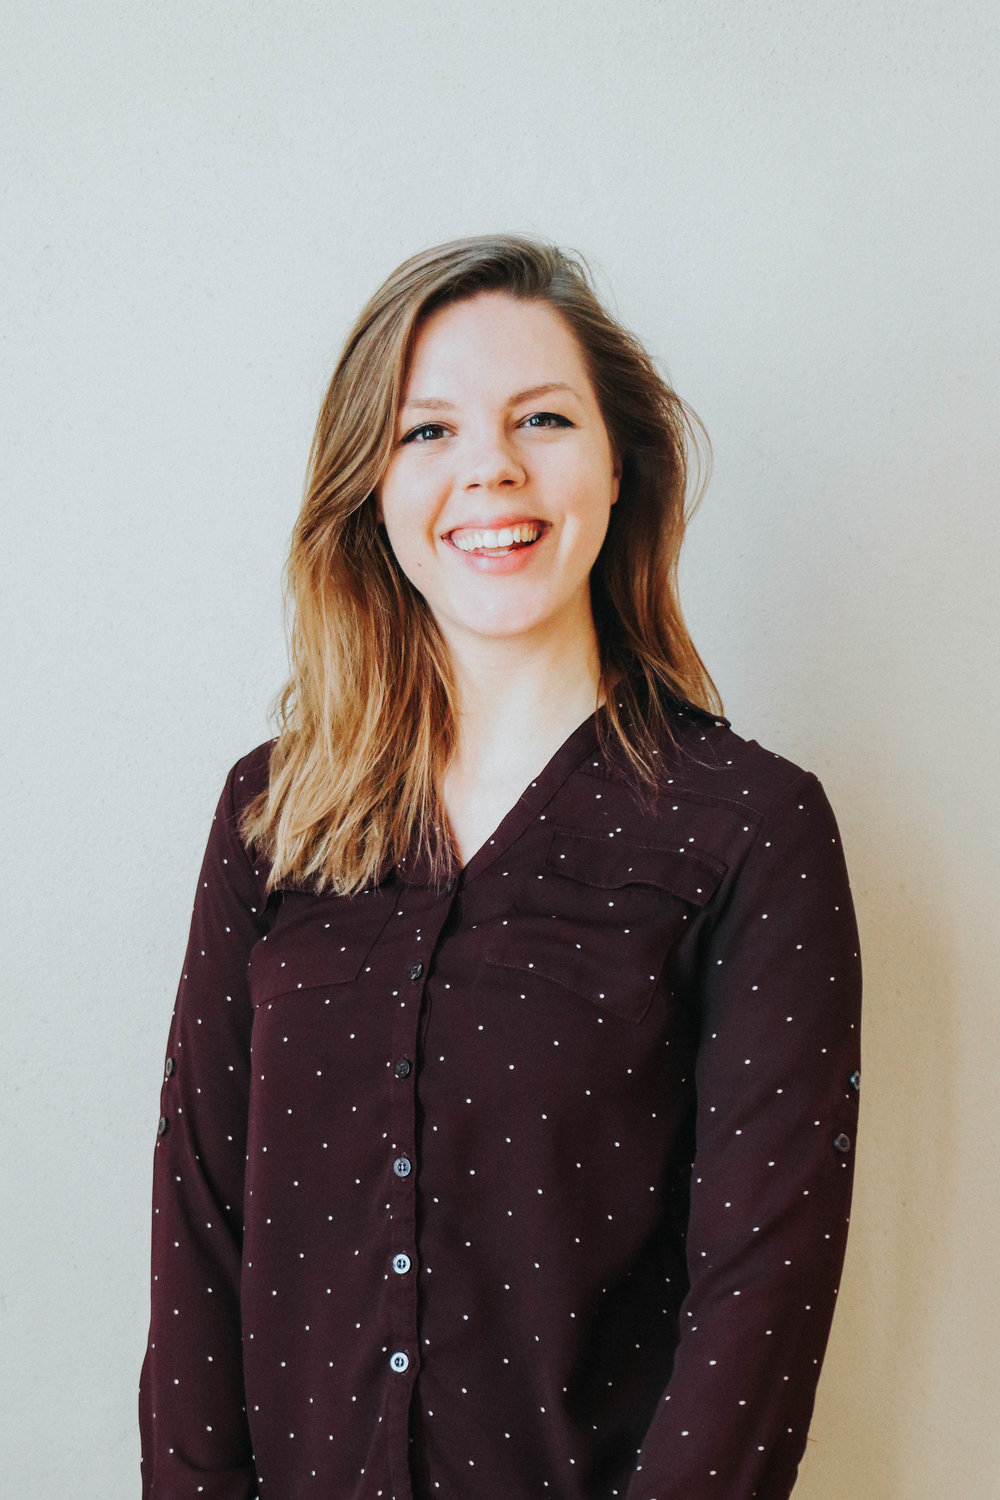 Alayna Nagurny , Editor  Every piece of writing that leaves our office is touched by Alayna. Copy editing all of our documents, instagram content, and client copy, Alayna works with Ringlet and clients to develop and execute beautifully written content for our clients and our company.